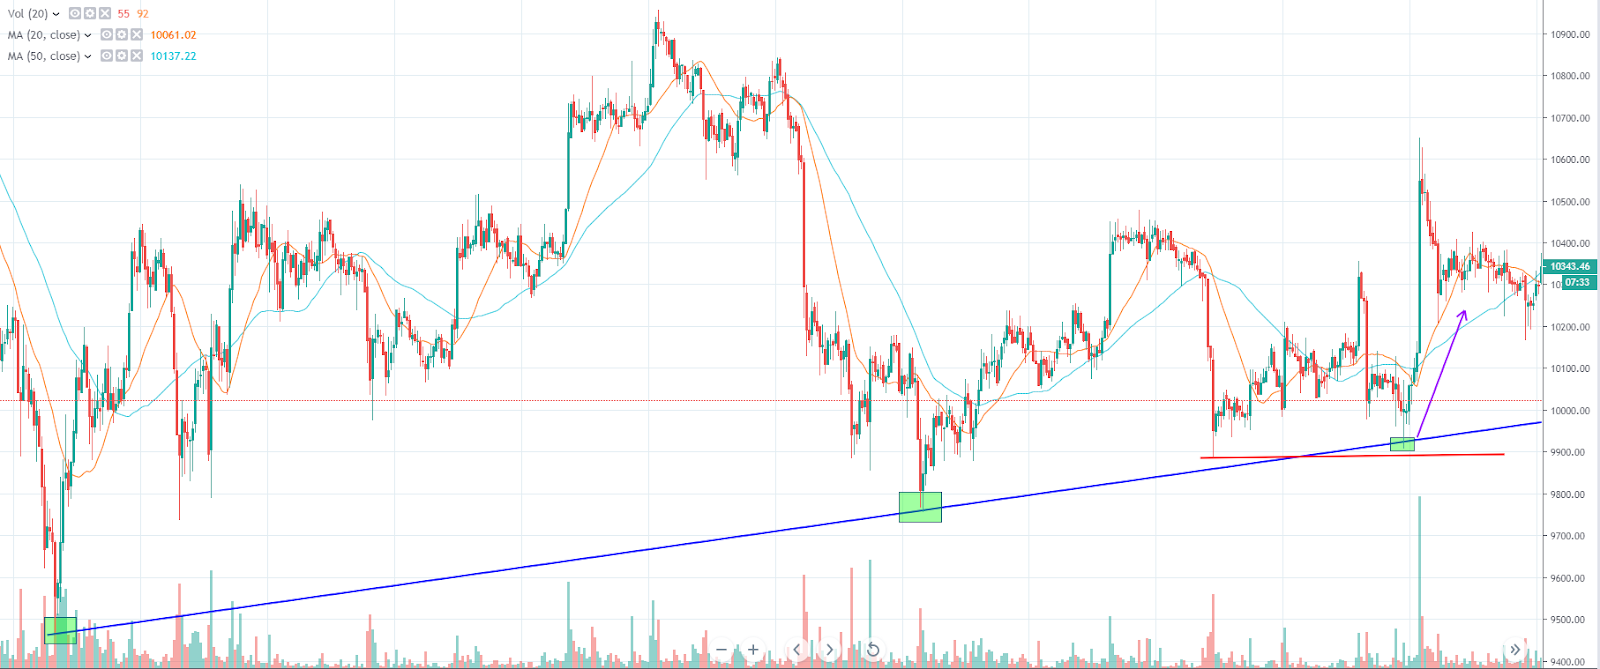 Bounce daily trading strategy sample (Source: TradingView)